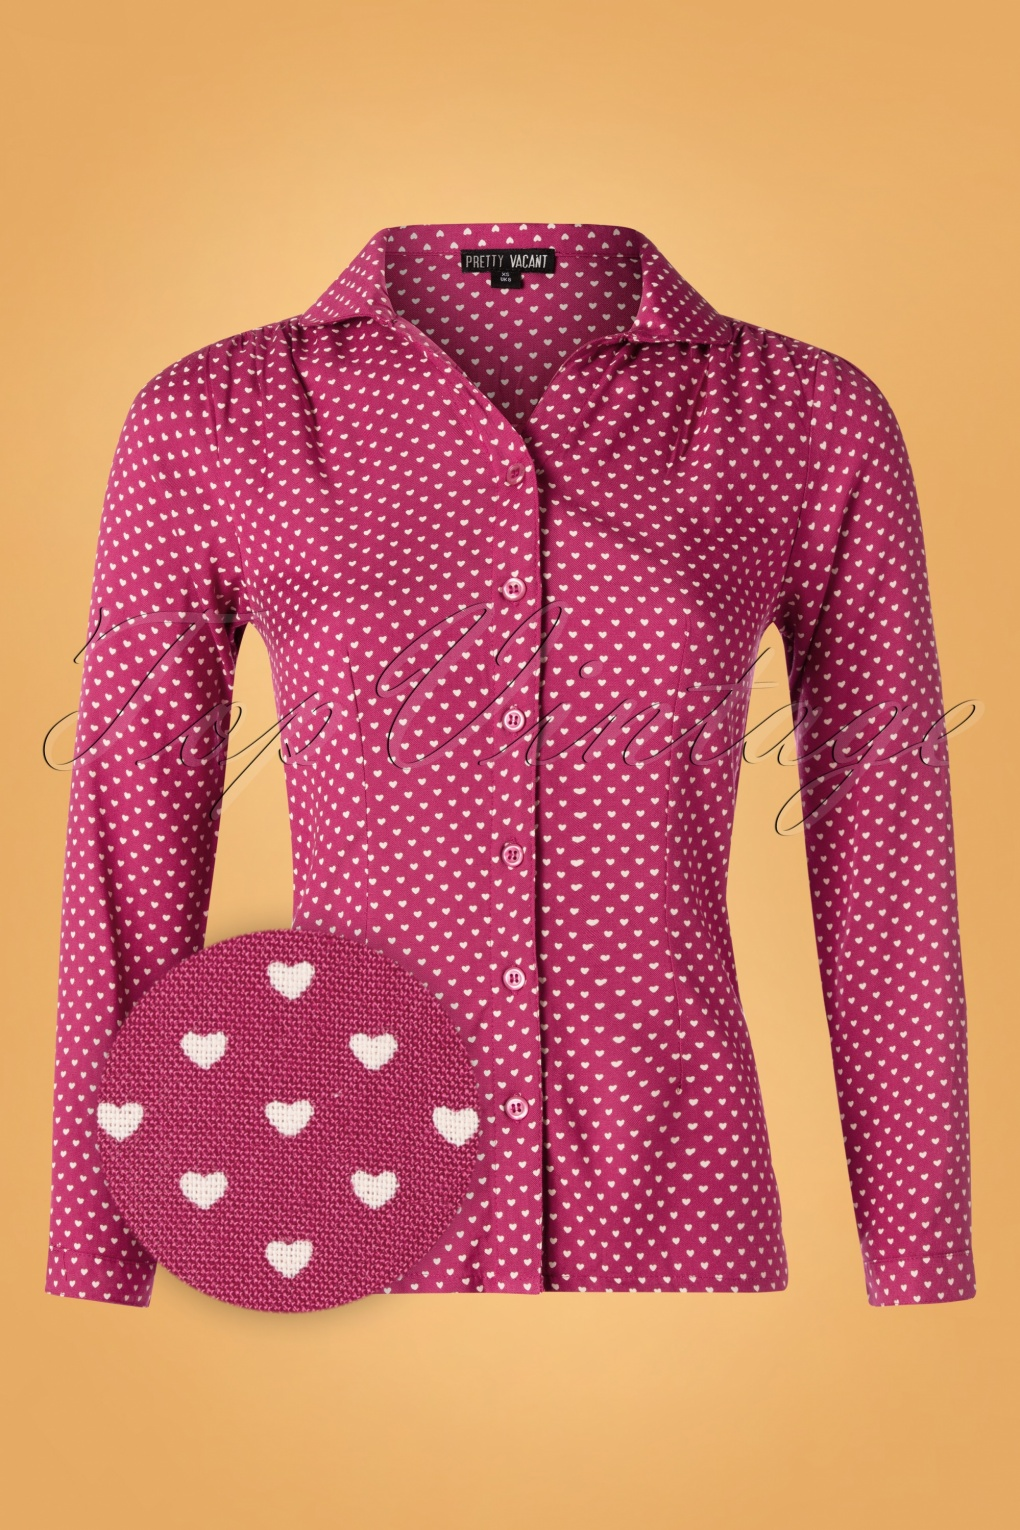 60s Dresses & 60s Style Dresses UK 60s Gaby Hearts Blouse in Raspberry £46.54 AT vintagedancer.com